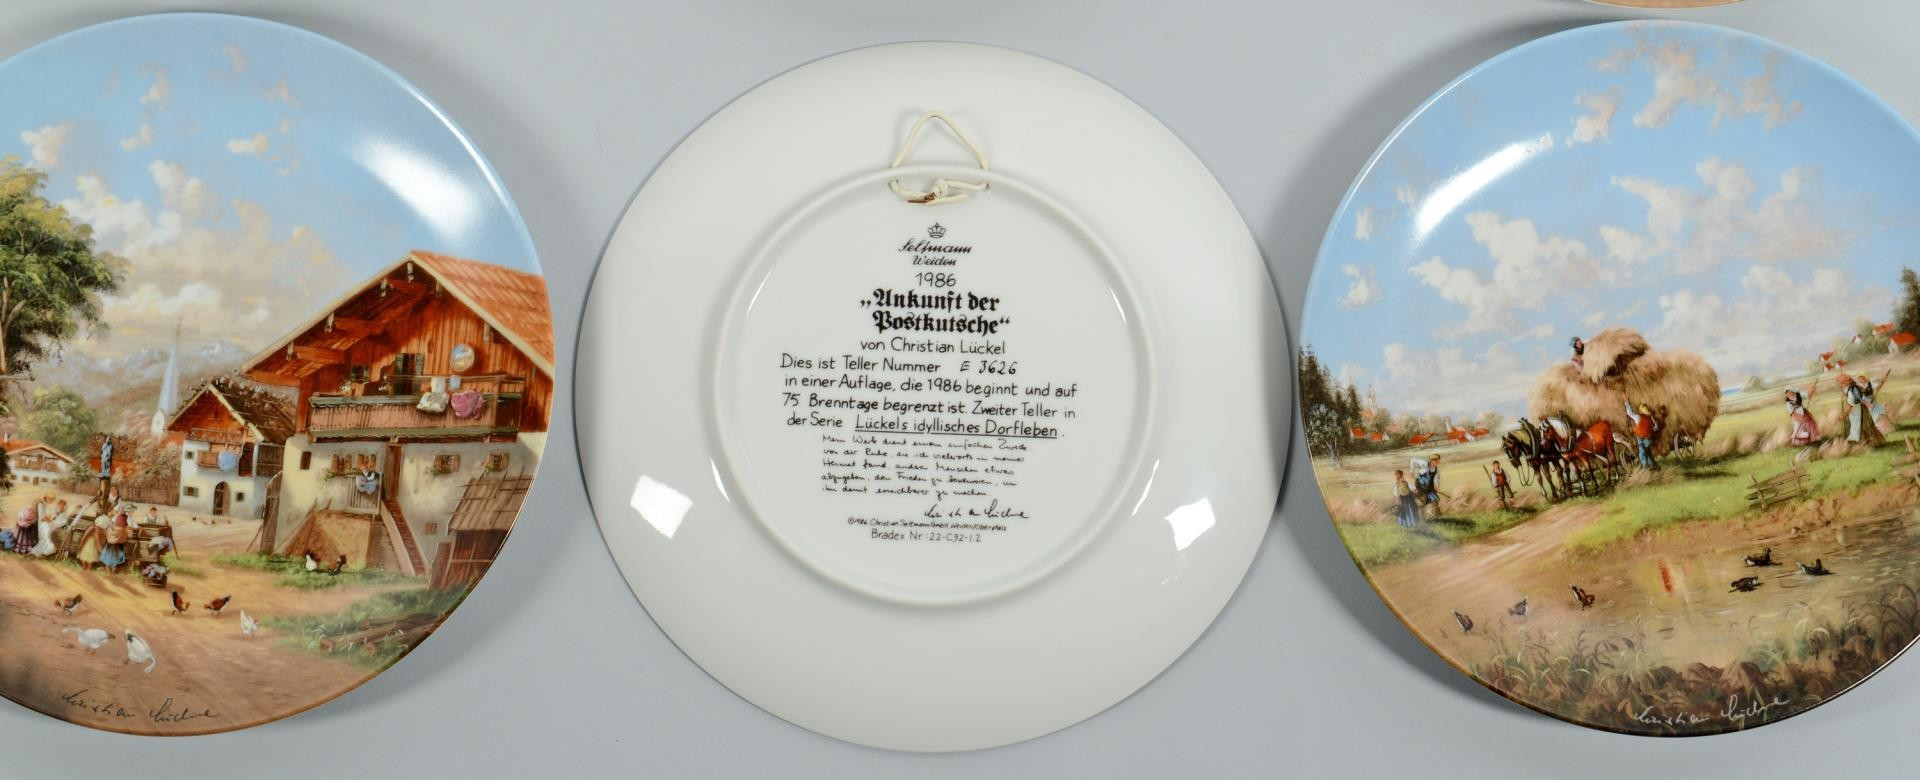 Lot 3389467: Danish and German Collectible Plates